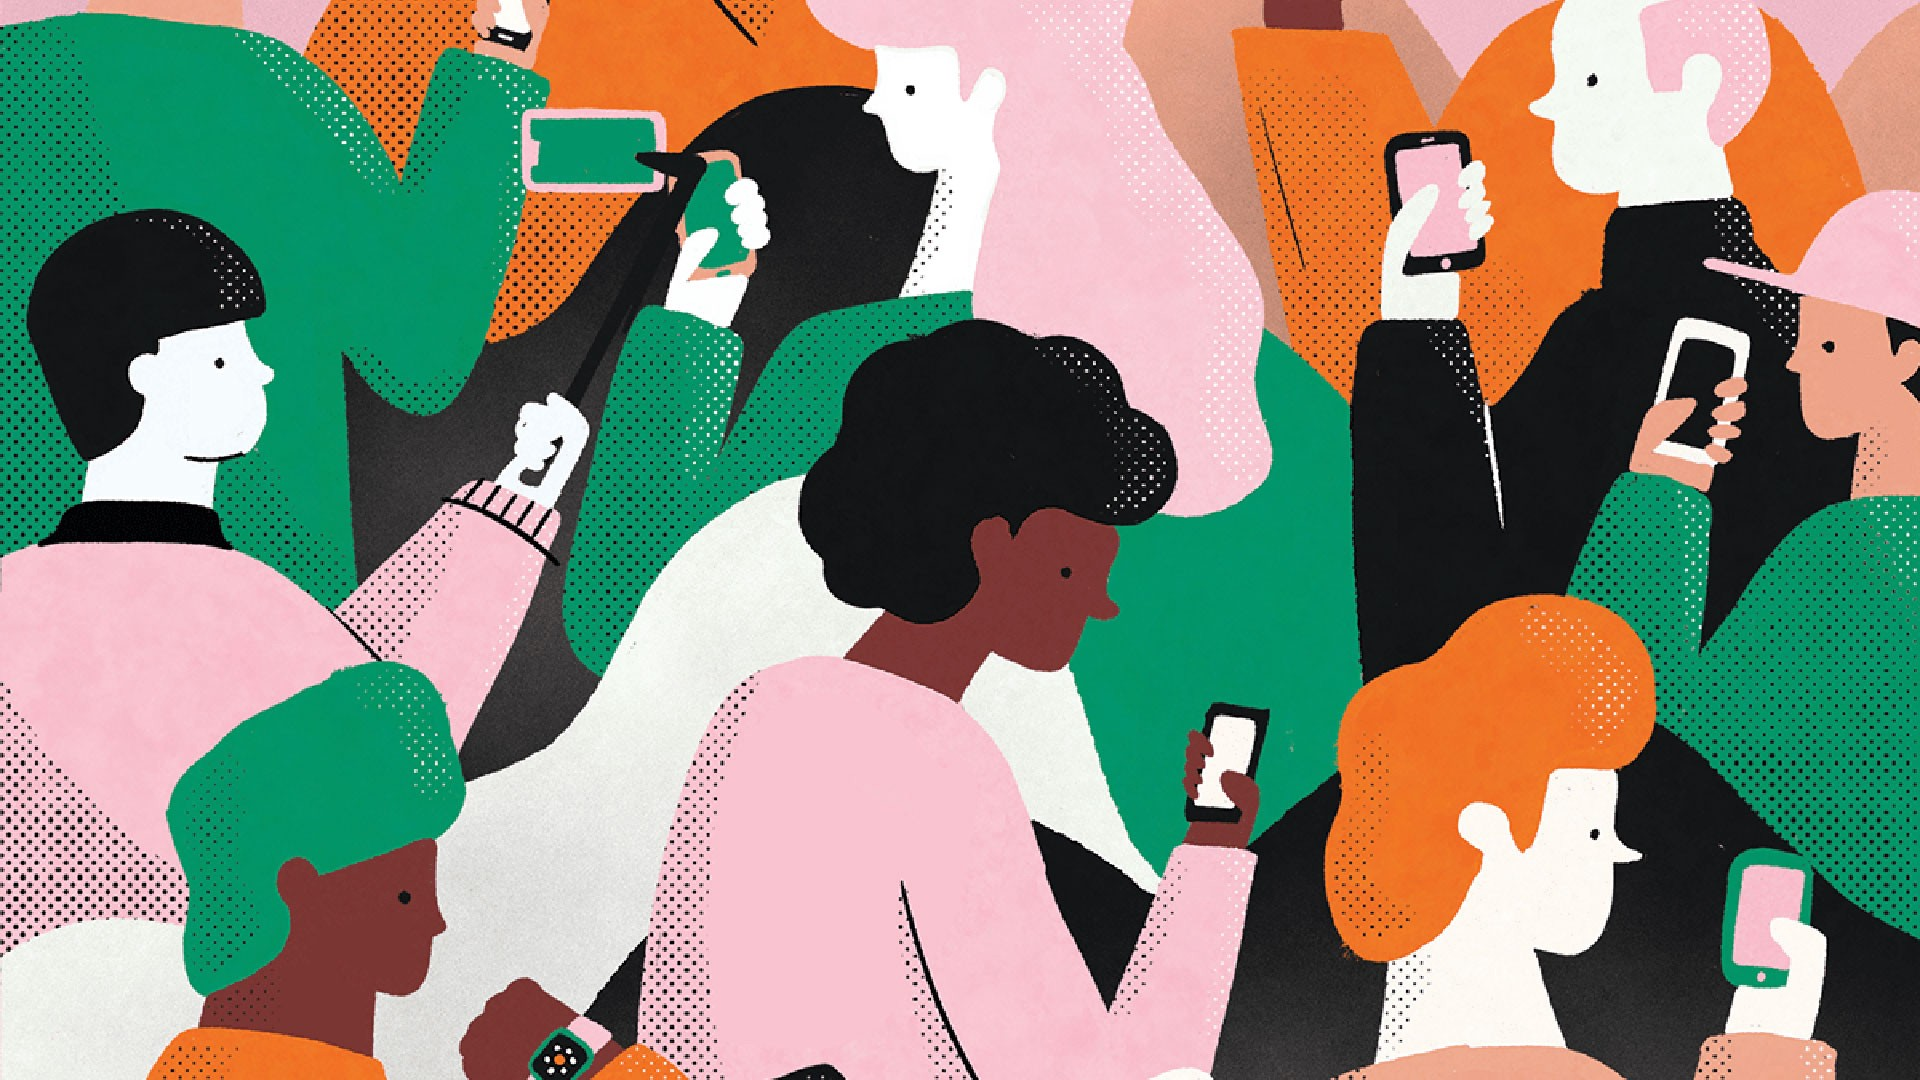 Illustration from Kenzo Hamasaki called Wifi Society showing people from multiple ethnicities using smartphones.